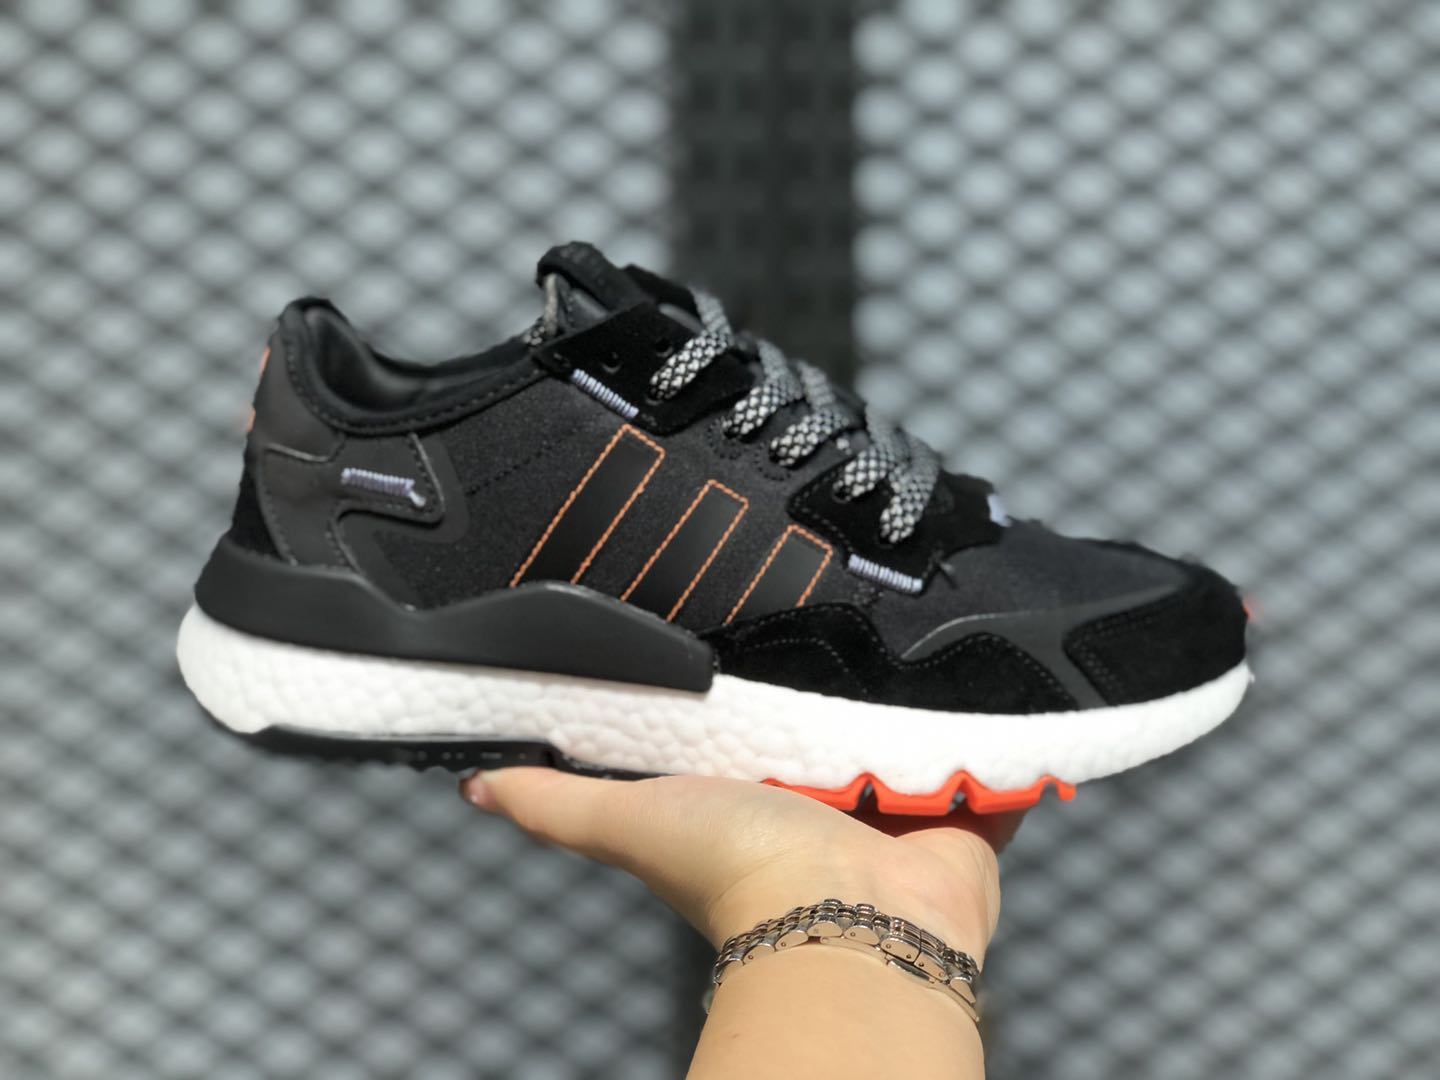 Adidas Nite Jogger Boost Shoes FW0187